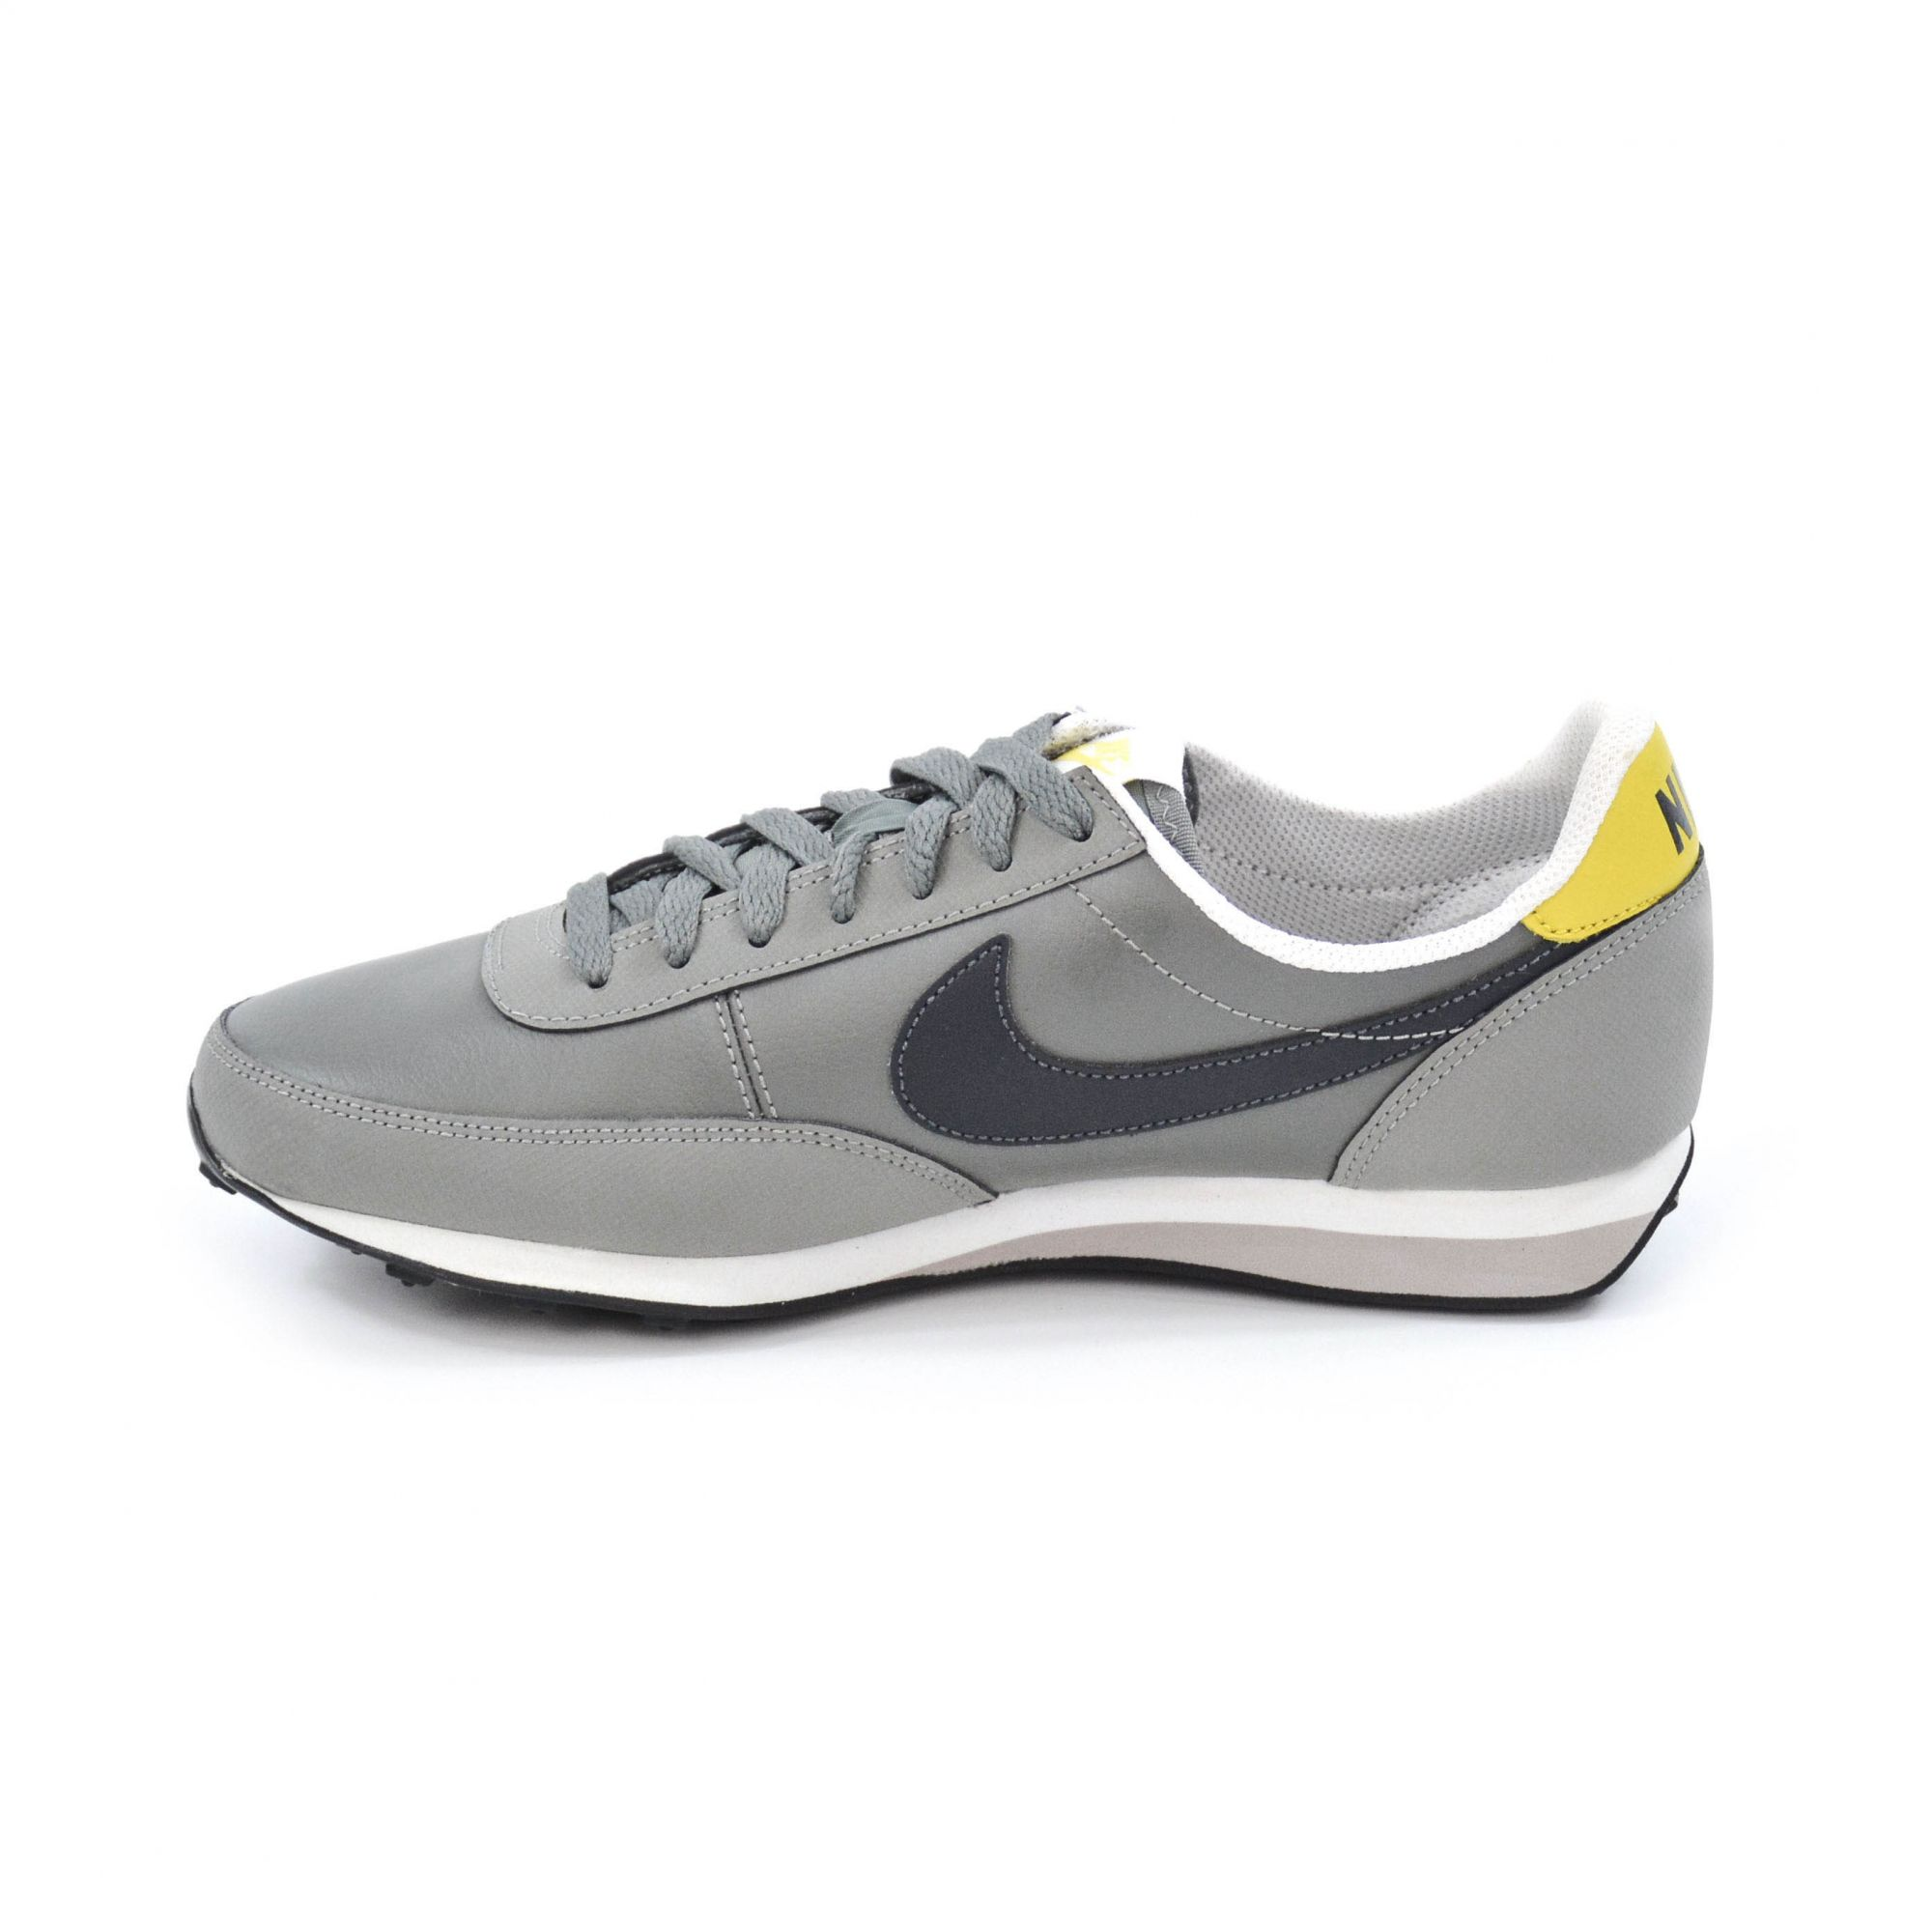 E> TENIS ELITE LEATHER SI CINZA NIKE 8532